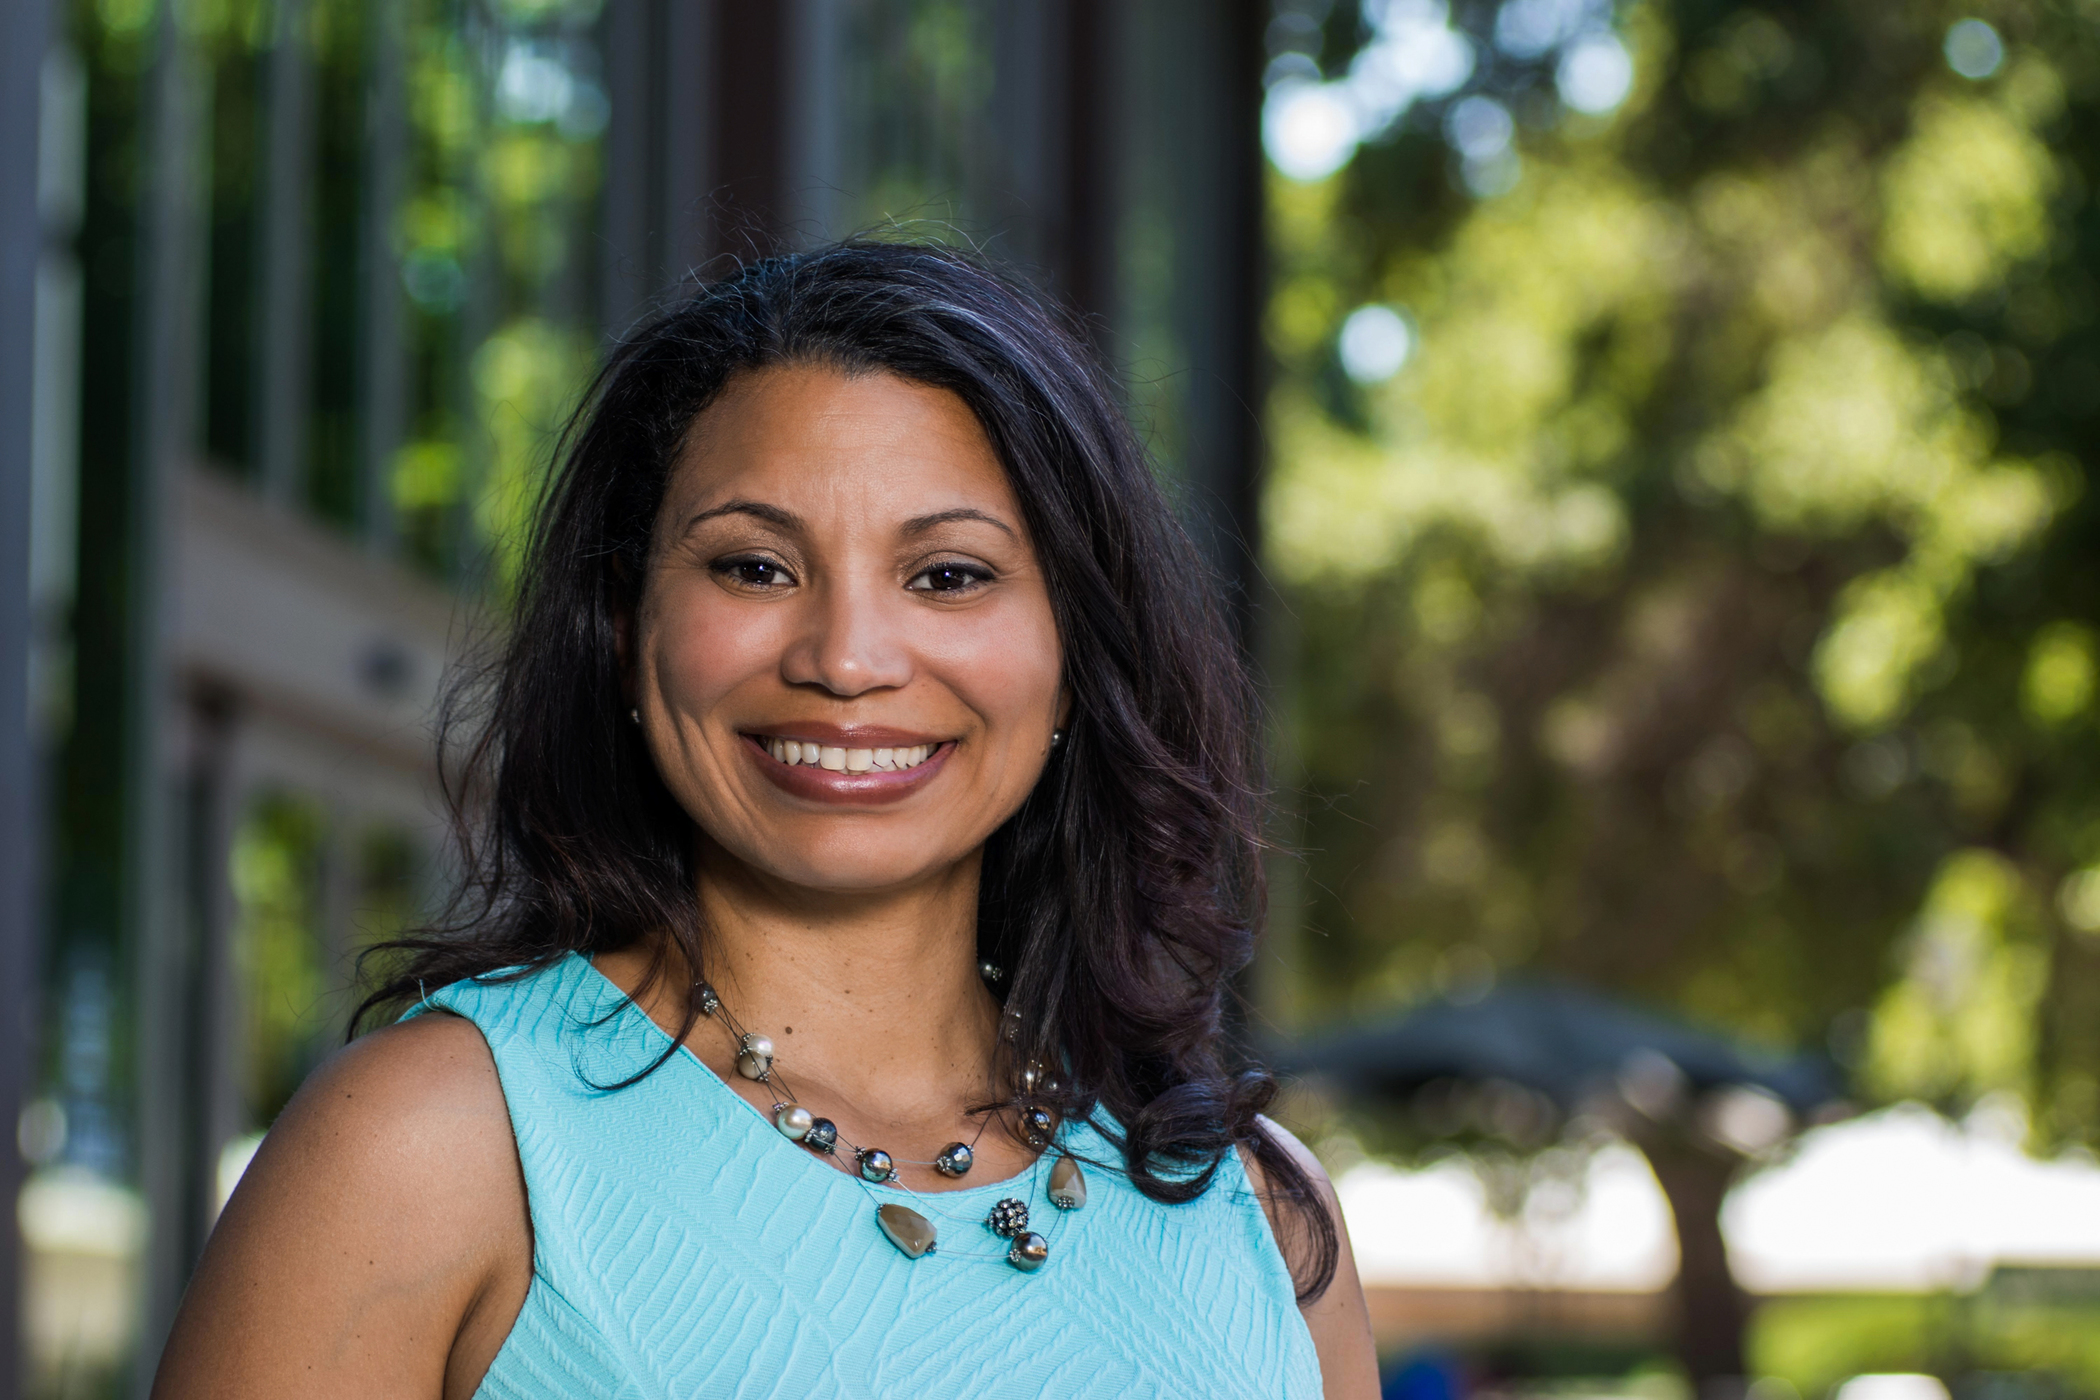 Lafetra College Of Education Dean Kimberly White Smith Elected To